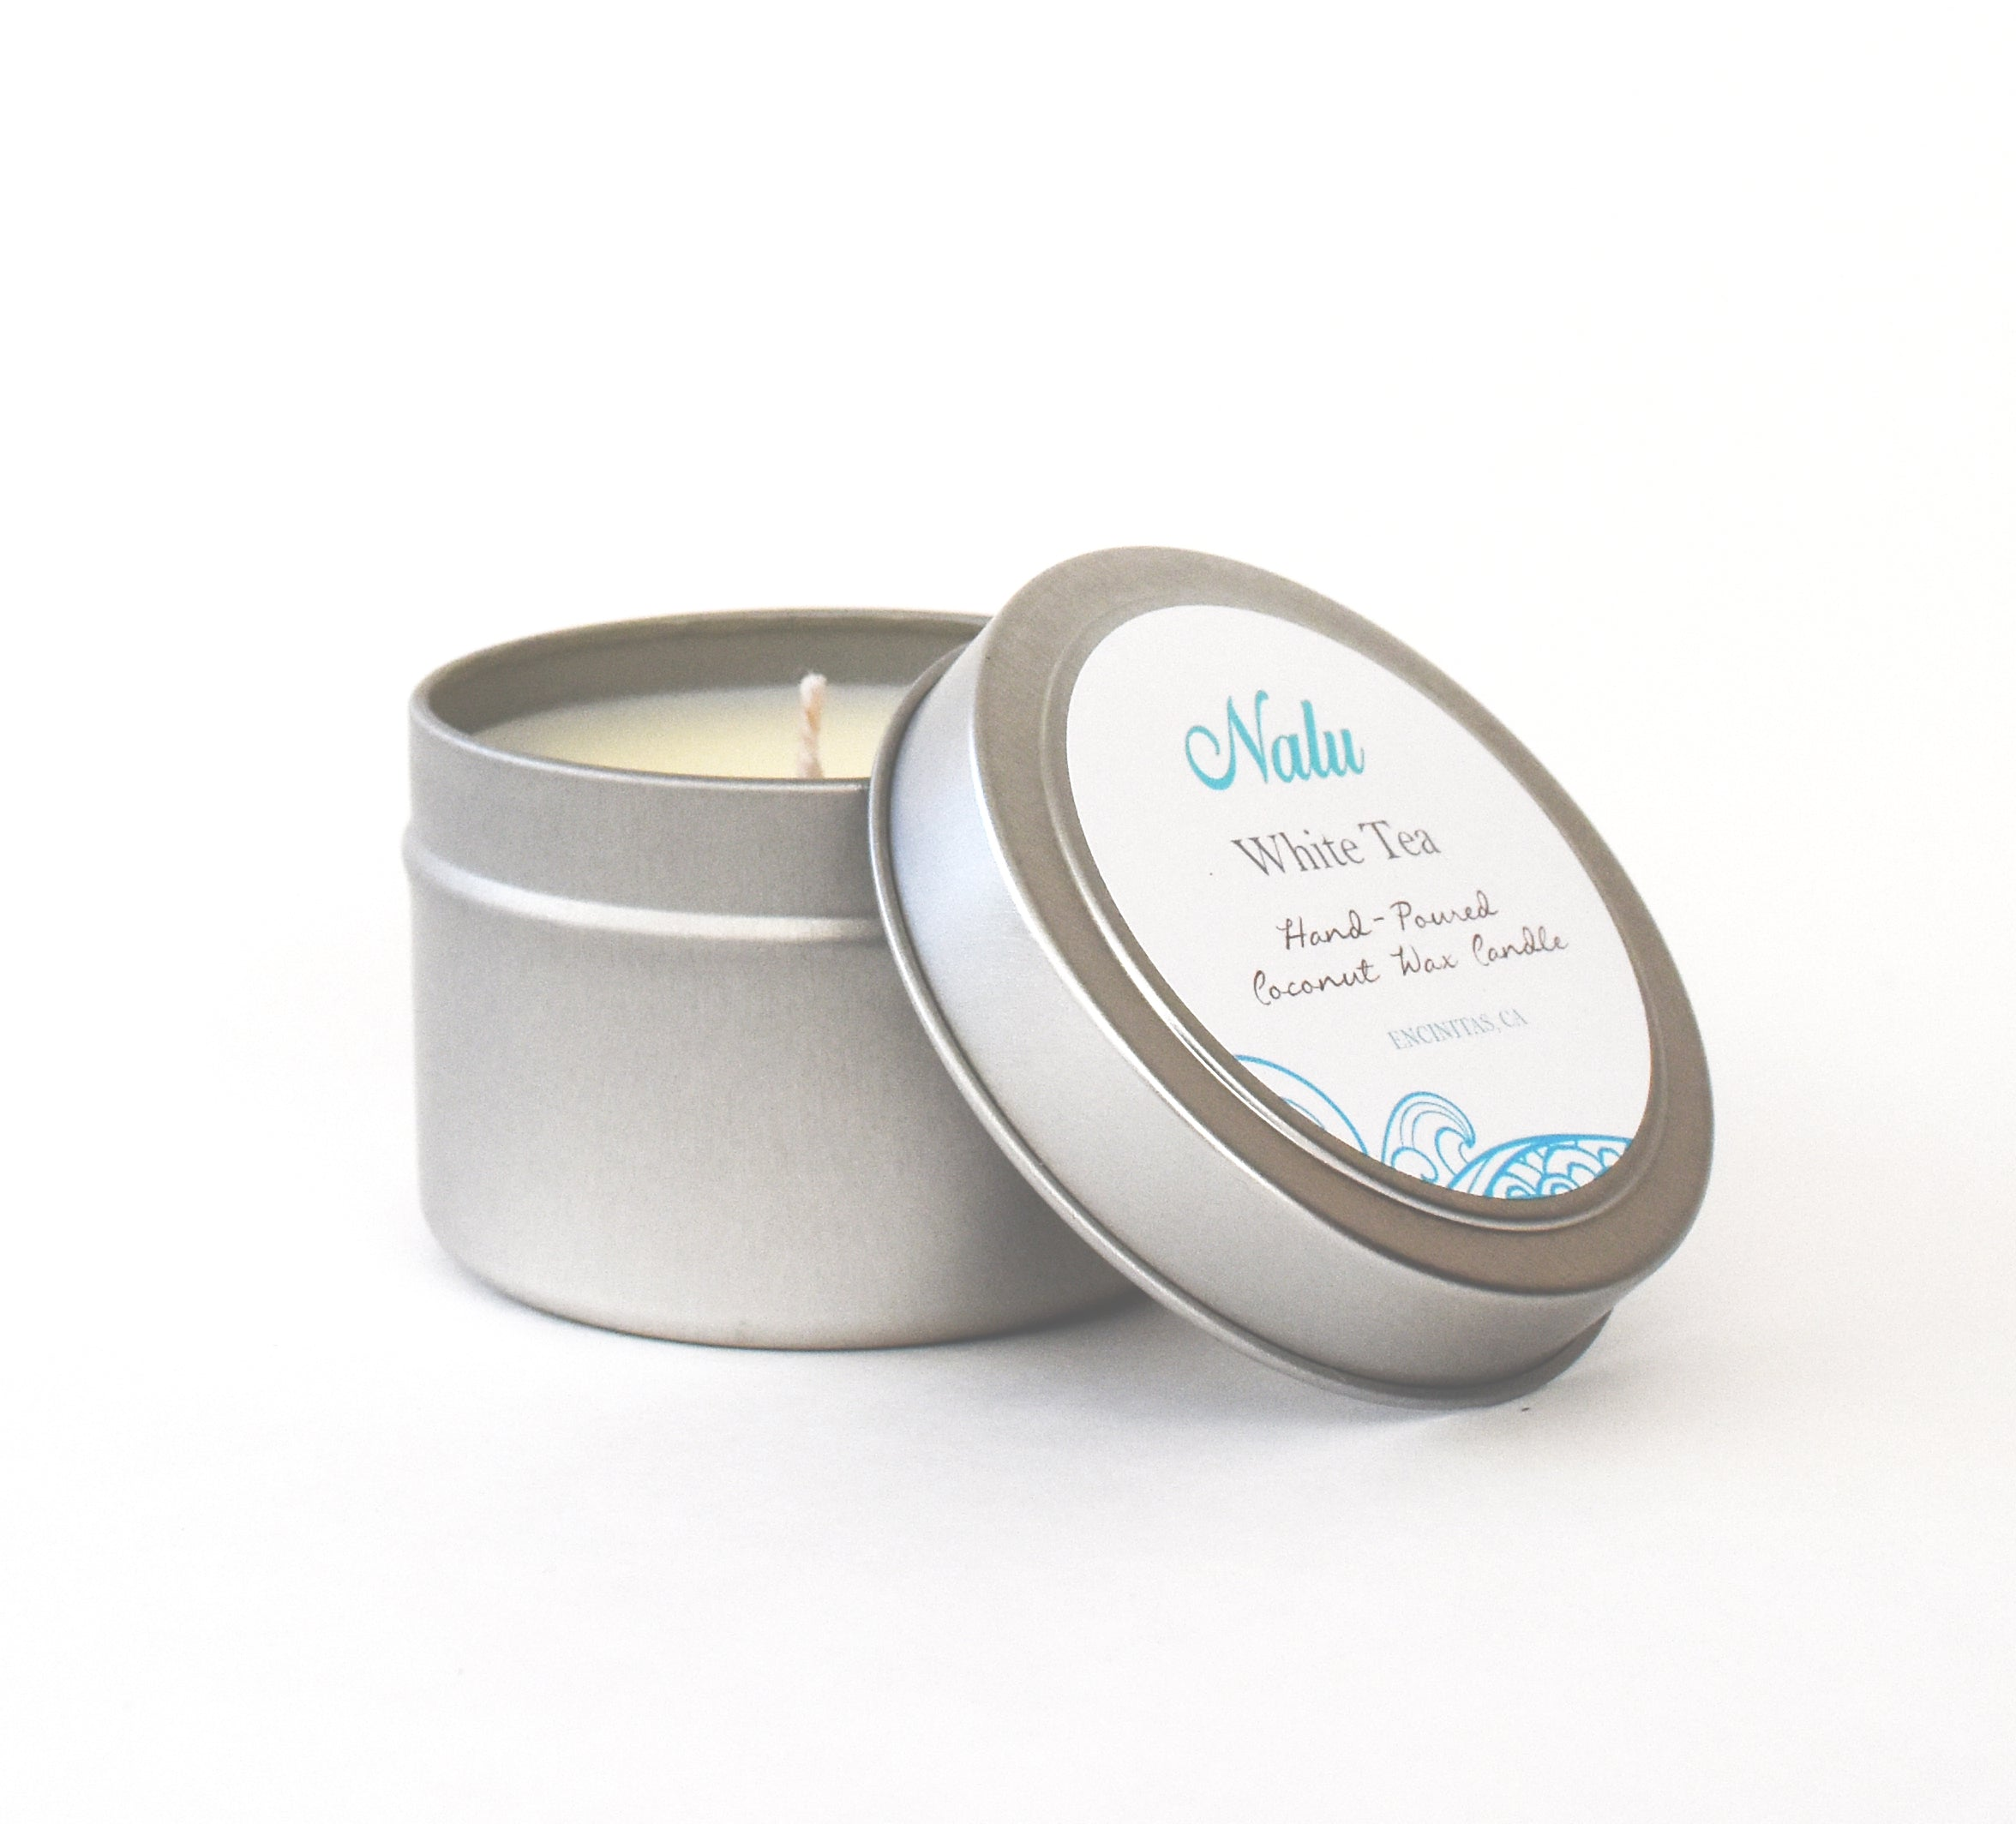 White Tea 4 oz. Candle